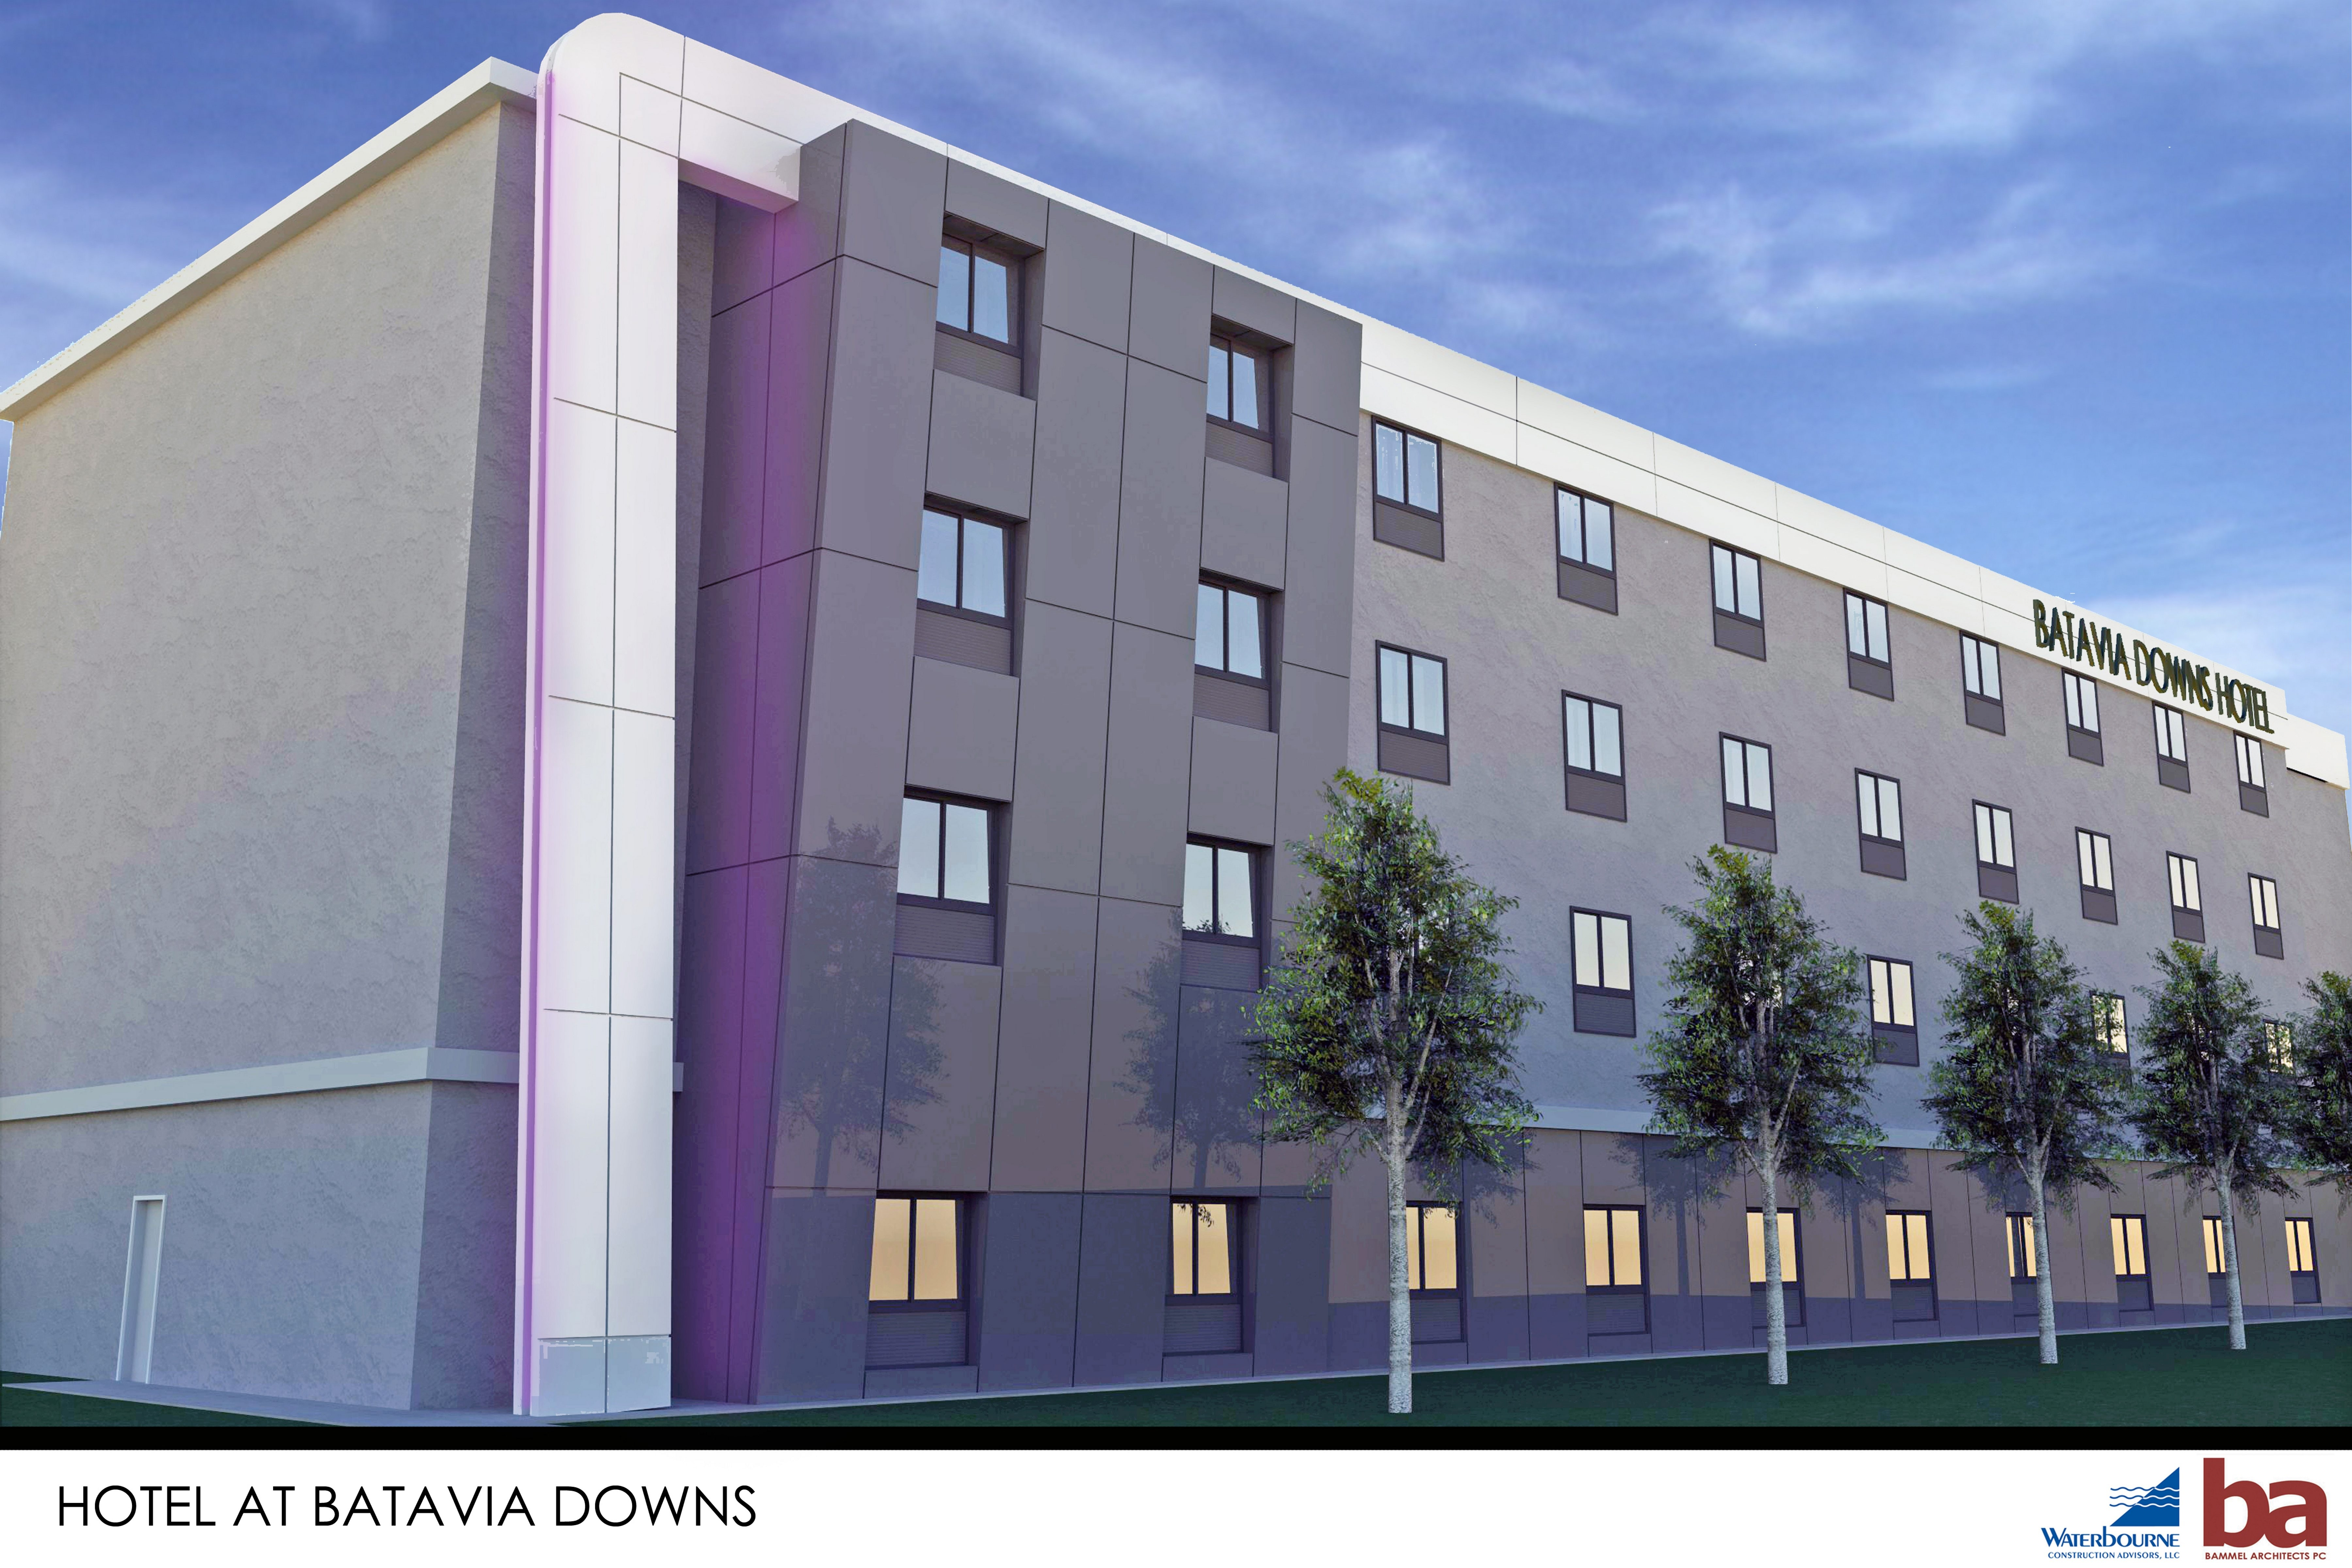 A public hearing is planned for 7 p.m. June 22 on ADK Hospitality's request for tax breaks for a proposed 82-room hotel at Batavia Downs.